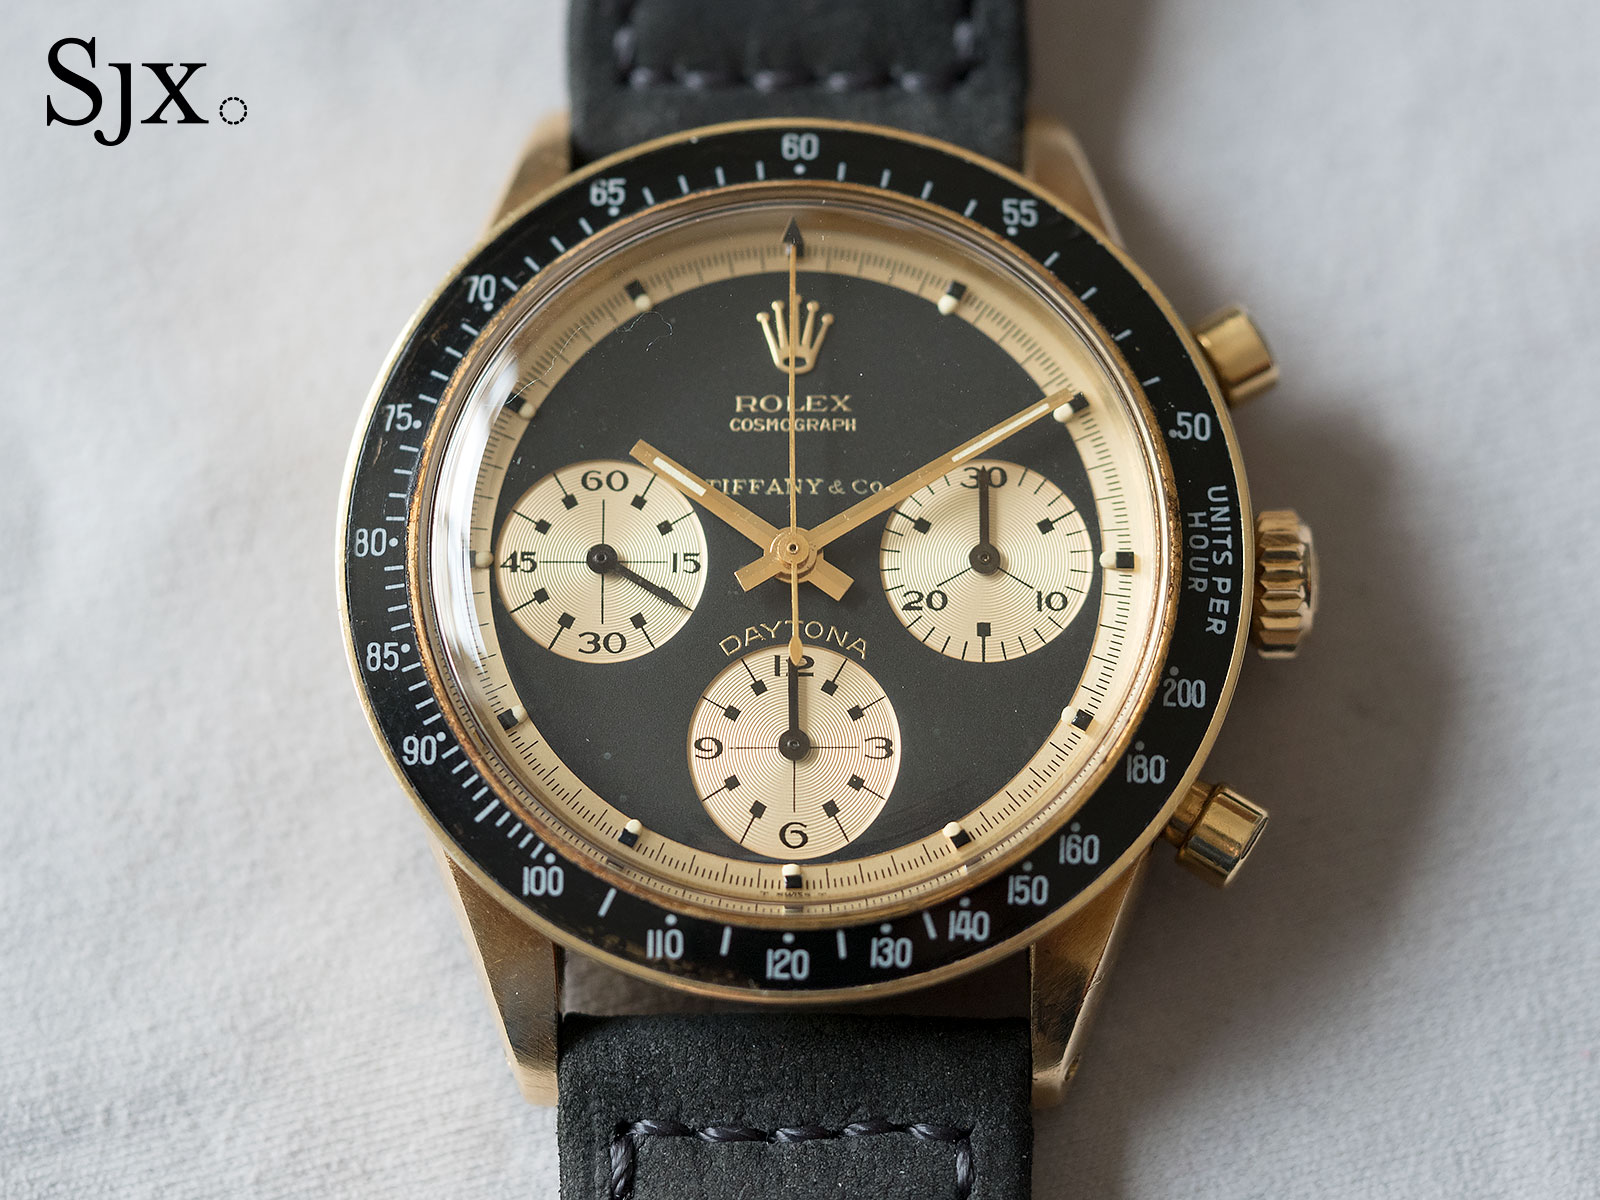 Hands On With Notable Rolex Watches At Phillips Geneva